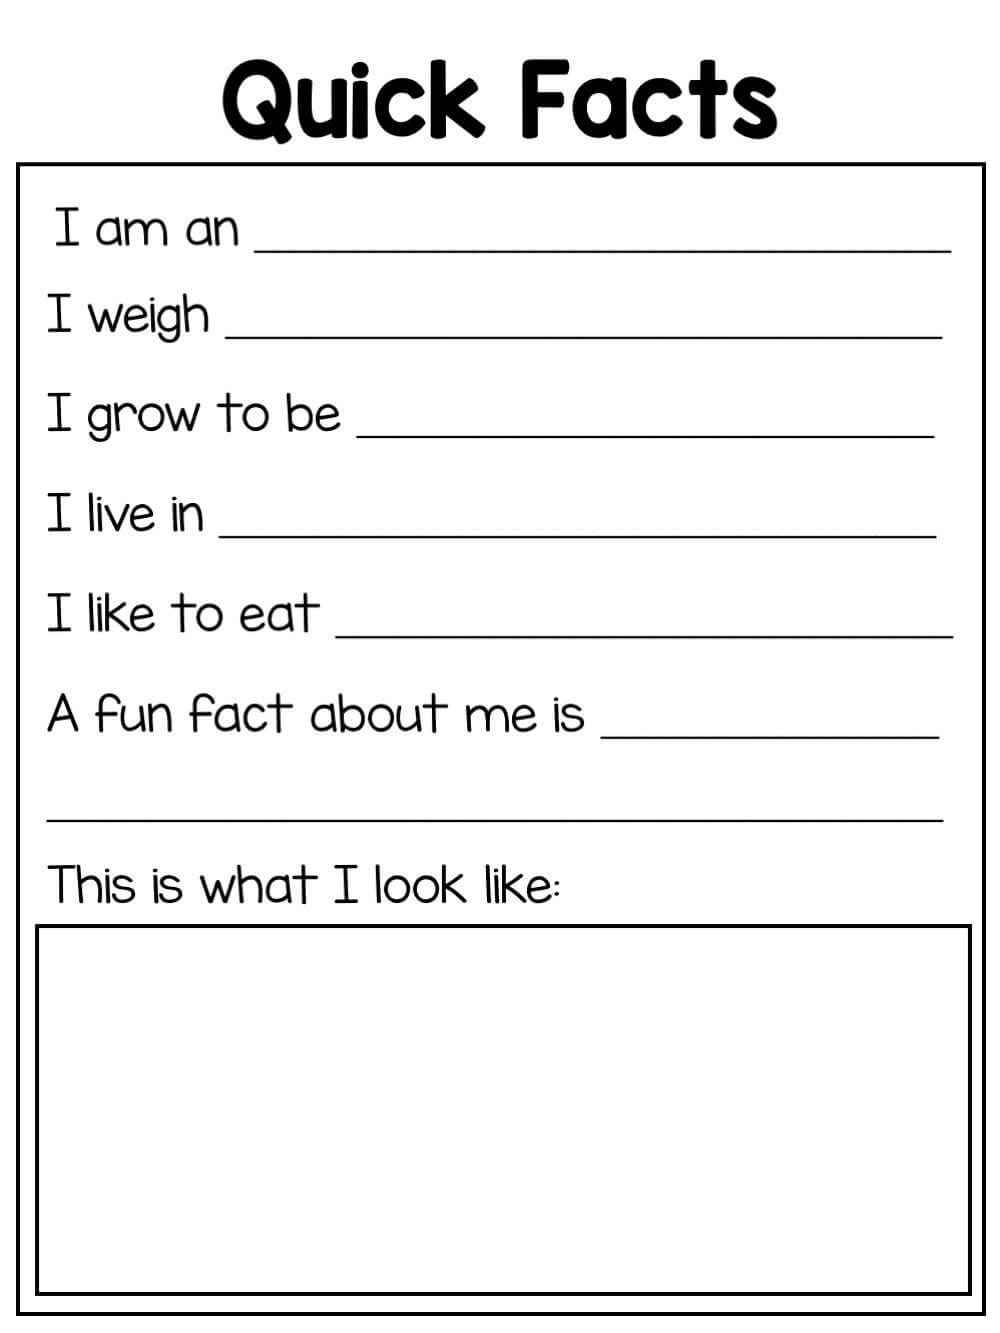 Animal Reports - Blank Templates For All Animal Research for Animal Report Template